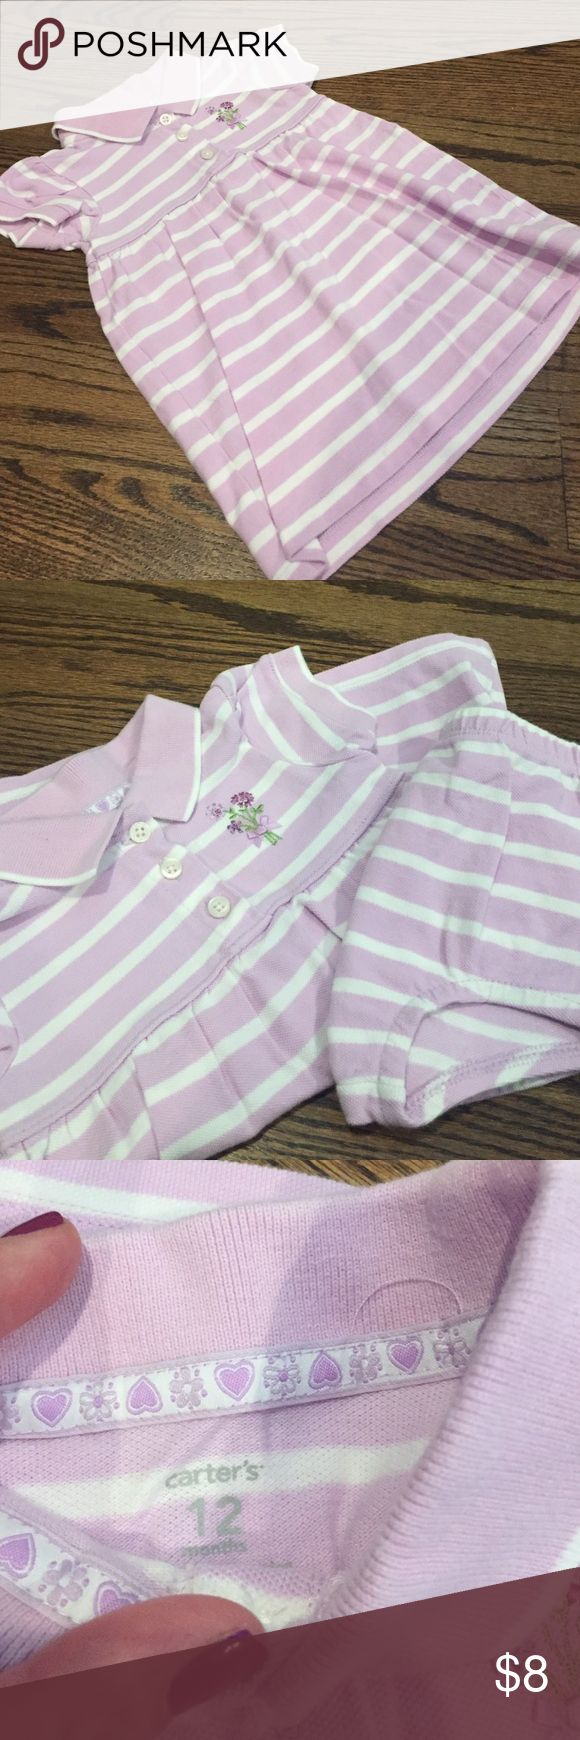 🎀New listing🎀Purple striped Carters dress This purple & white striped dress from Carters has the look of a pique polo with a touch of feminine.  There is floral detail with a bow on the left front.  Includes matching bloomers.  In very good used condition.  Size 12 months. Carter's Dresses